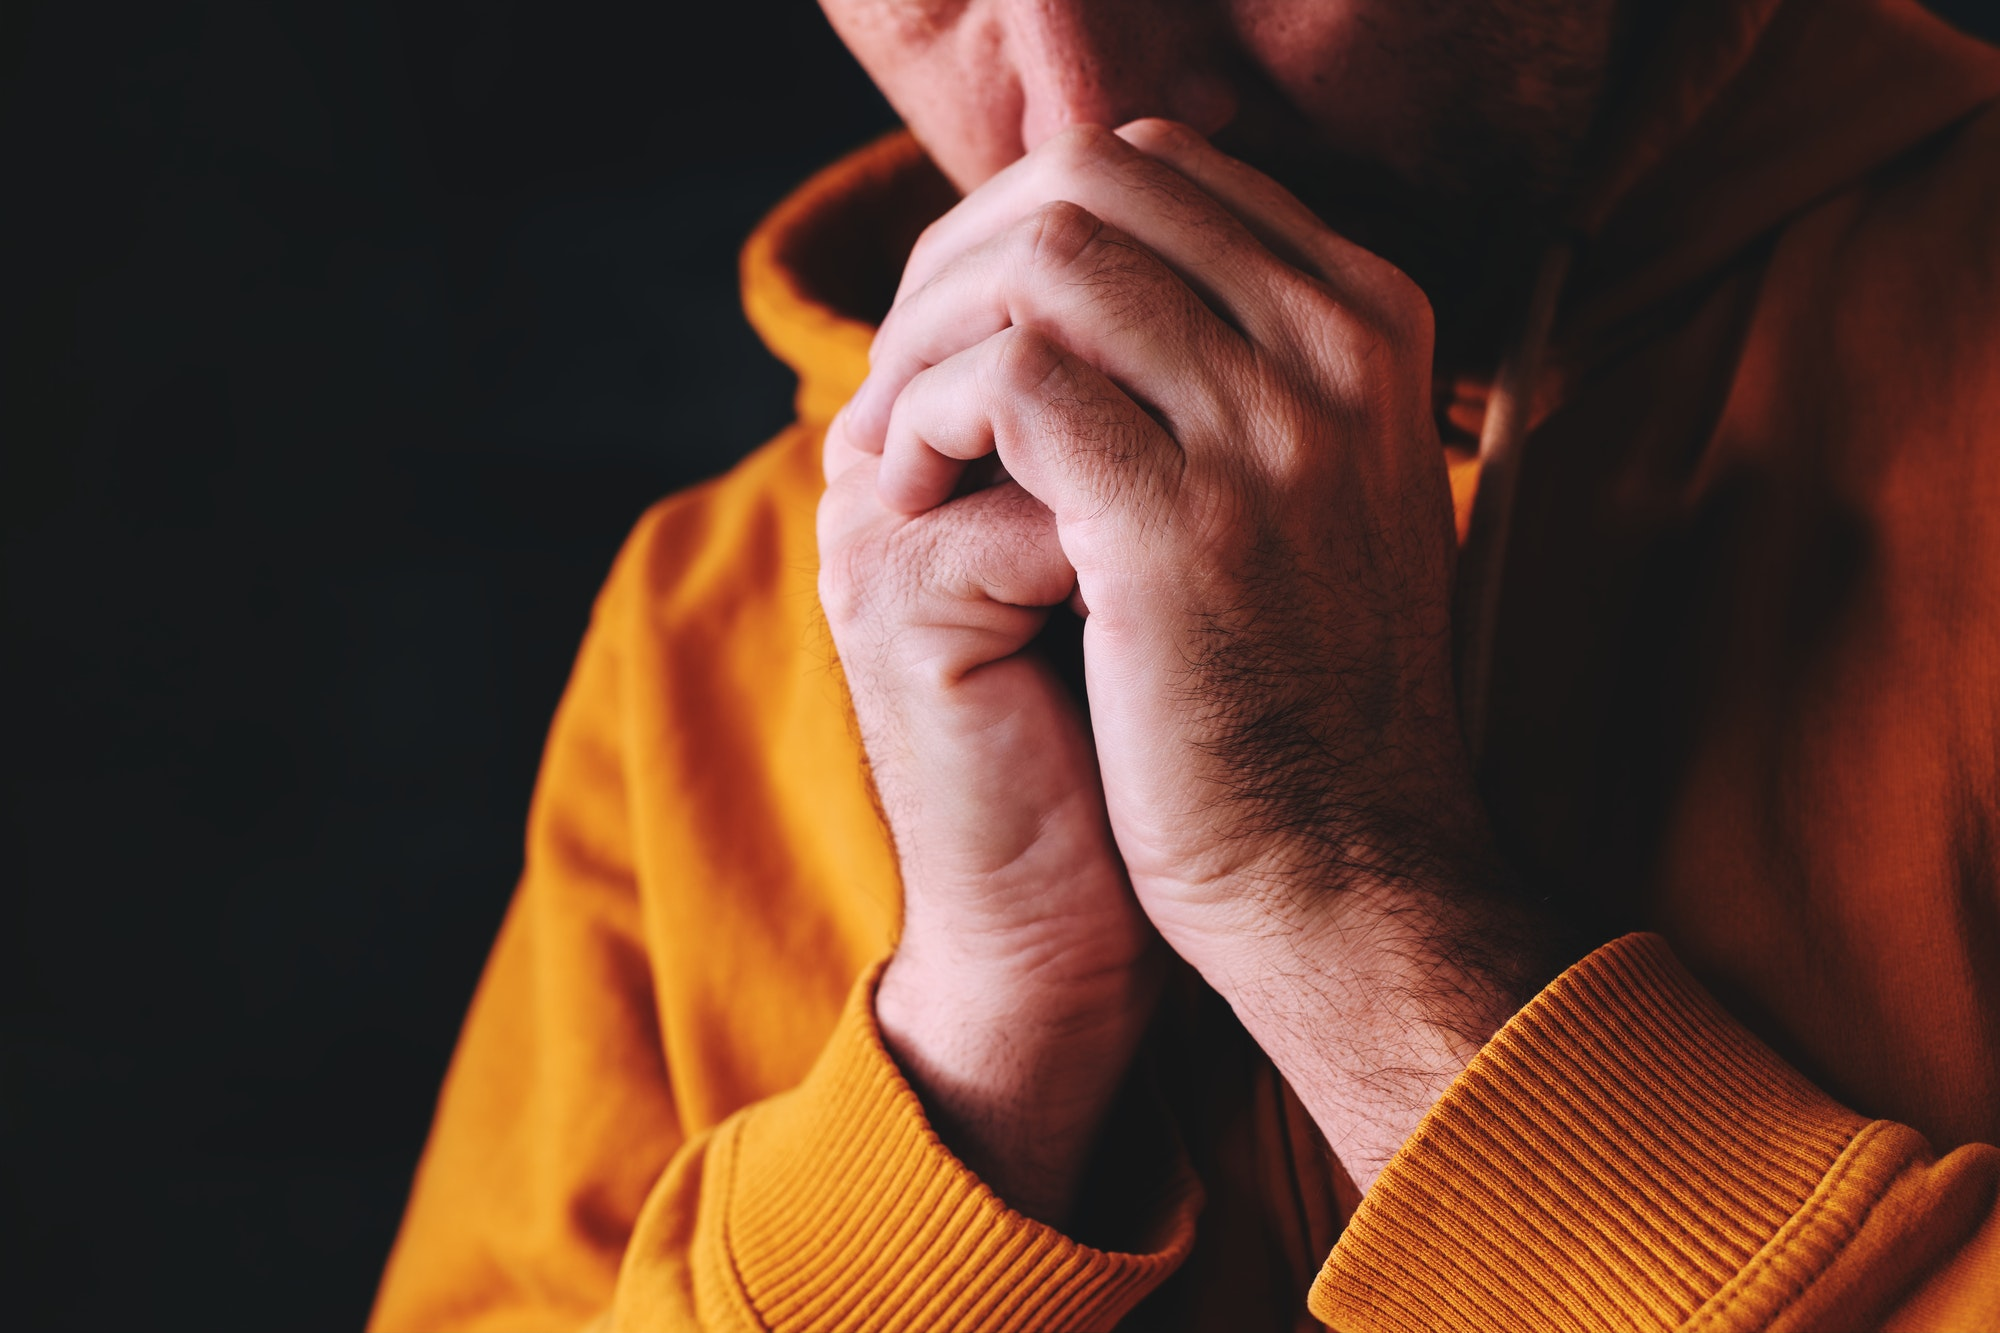 Christian man praying to God in dark room with clasped hands